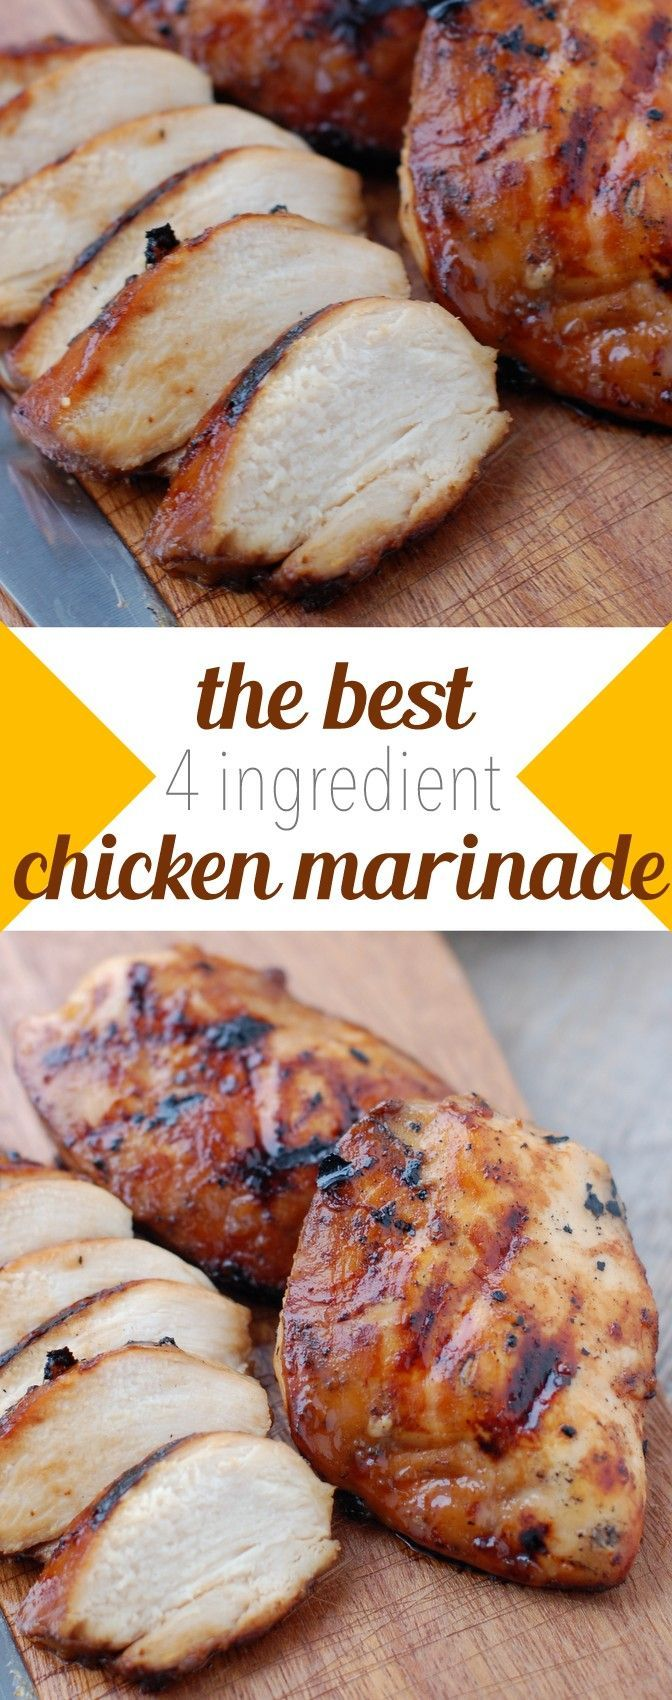 the best 4 ingredient chicken marinade | NoBiggie.net4 Ingredient Chicken Marinade:  1 cup brown sugar 1 cup oil 1/2 cup soy sauce 1/2 cup vinegar